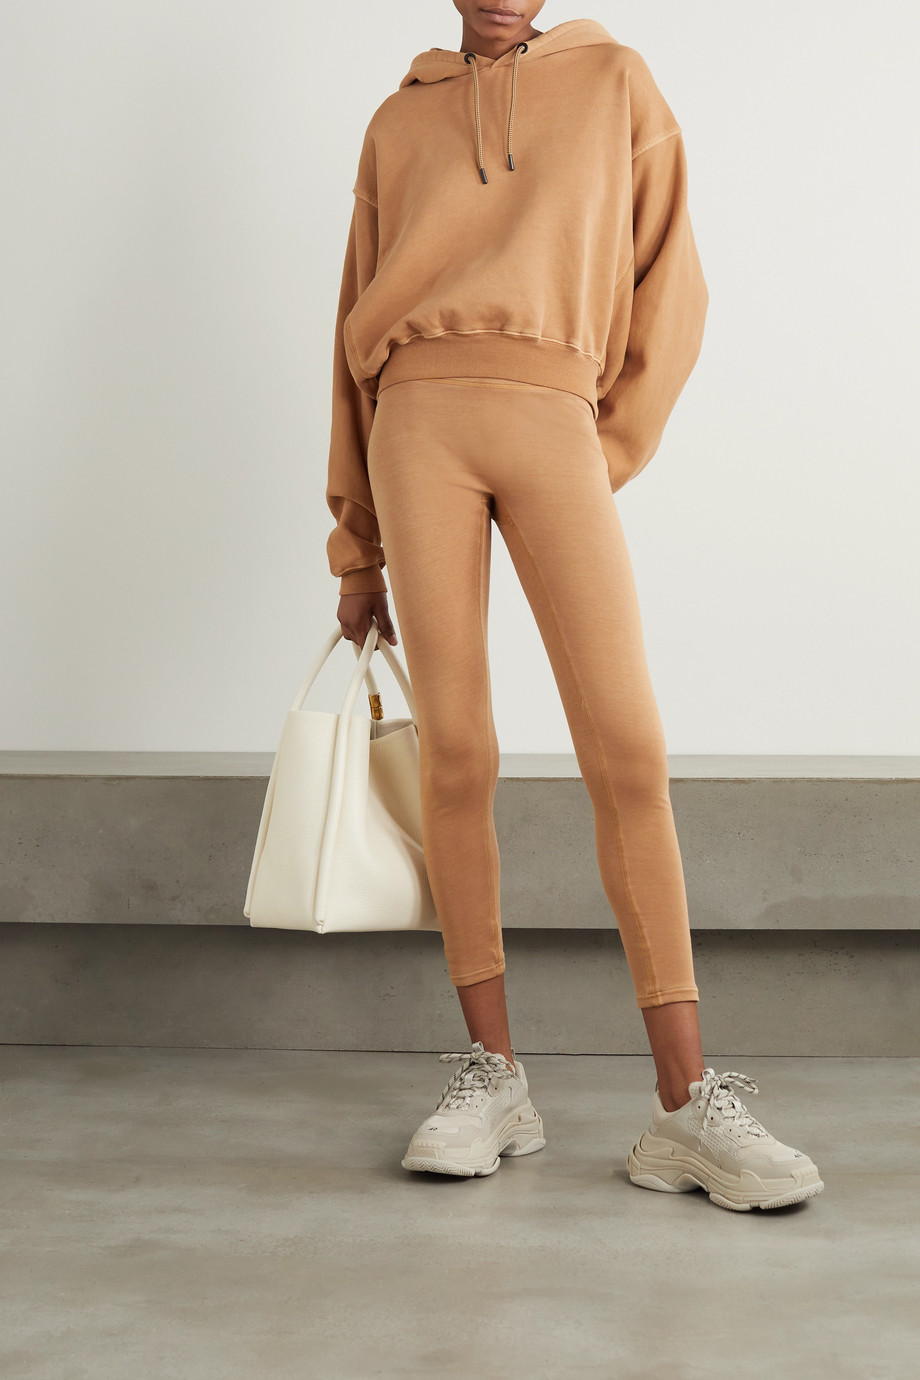 Reebok X Victoria Beckham Travel jersey leggings